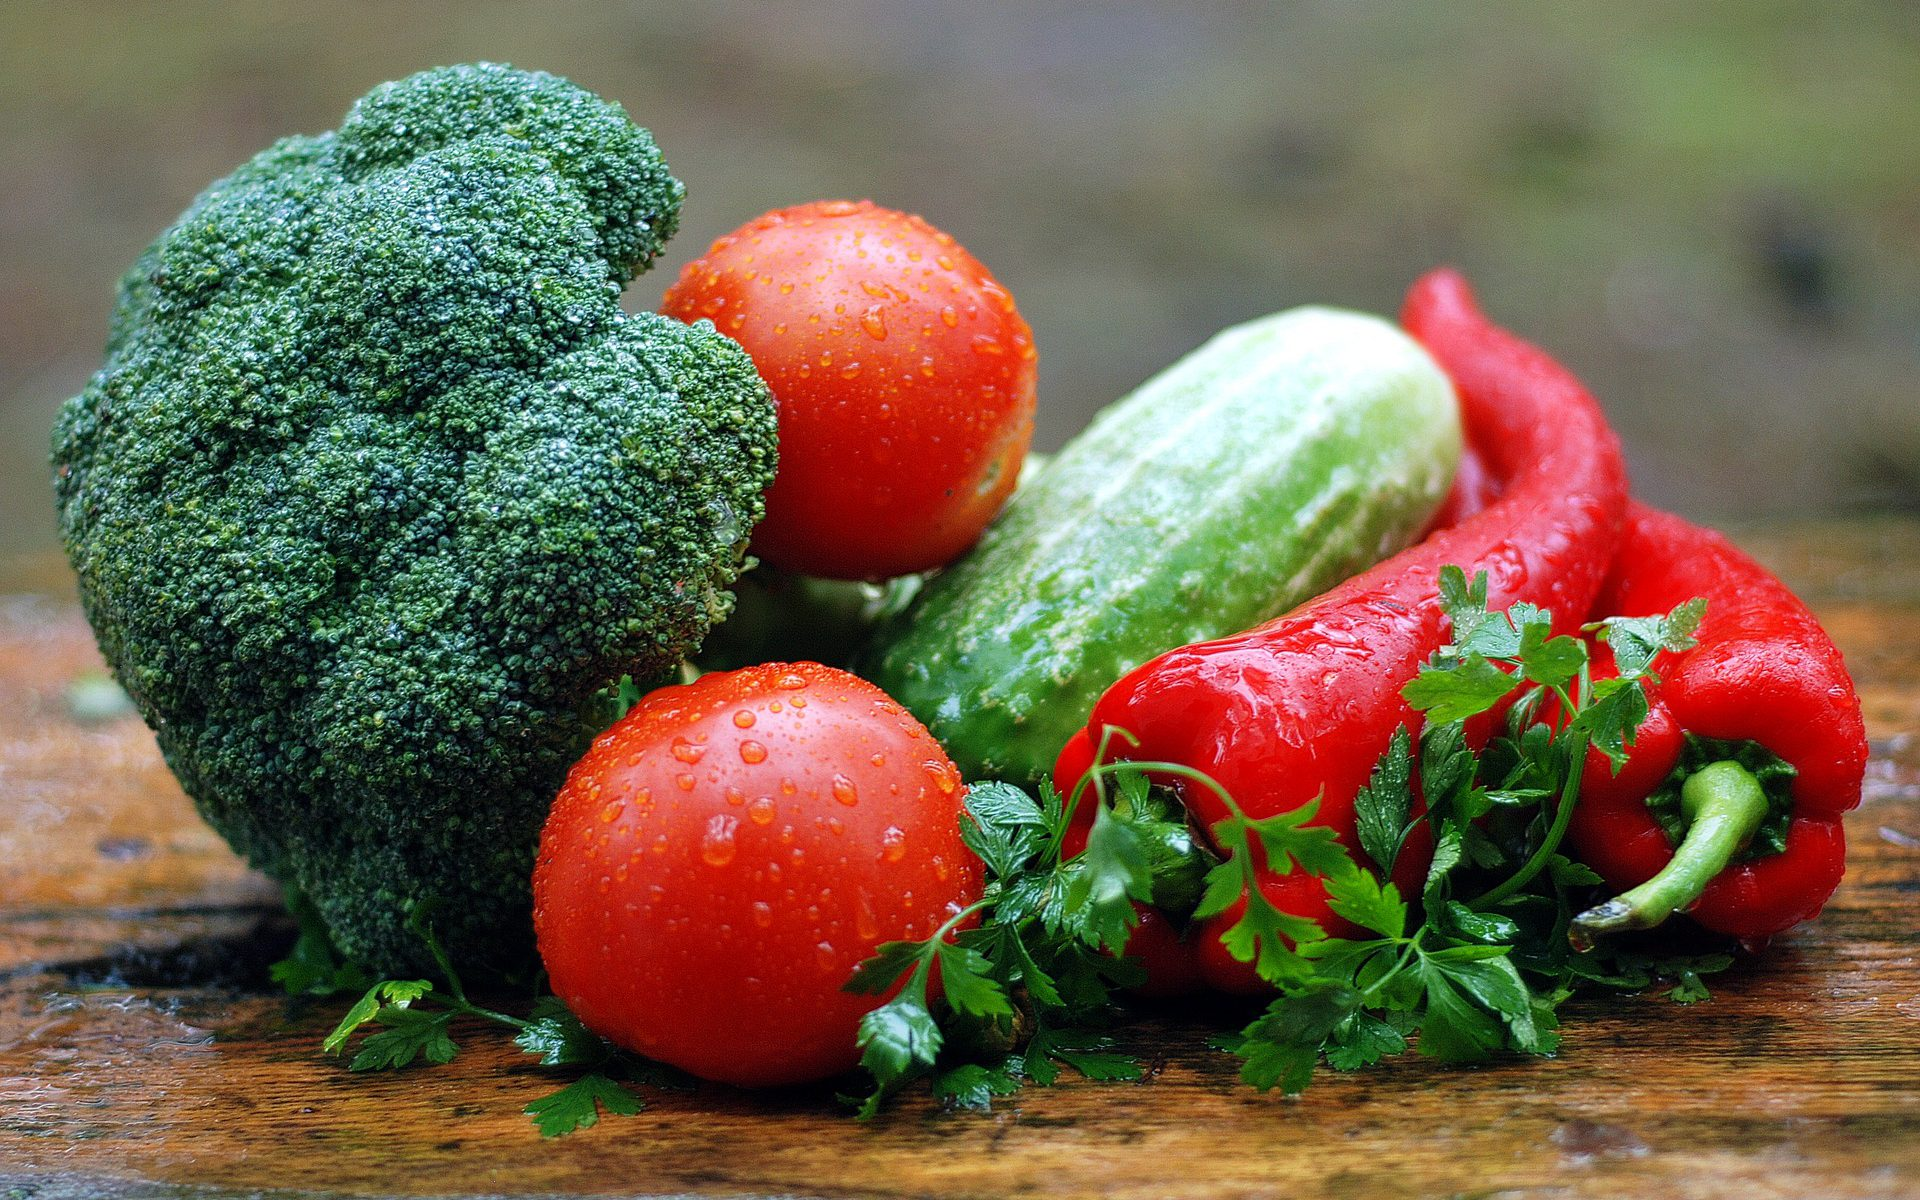 Broccoli, tomatoes, cucumber and red pepper